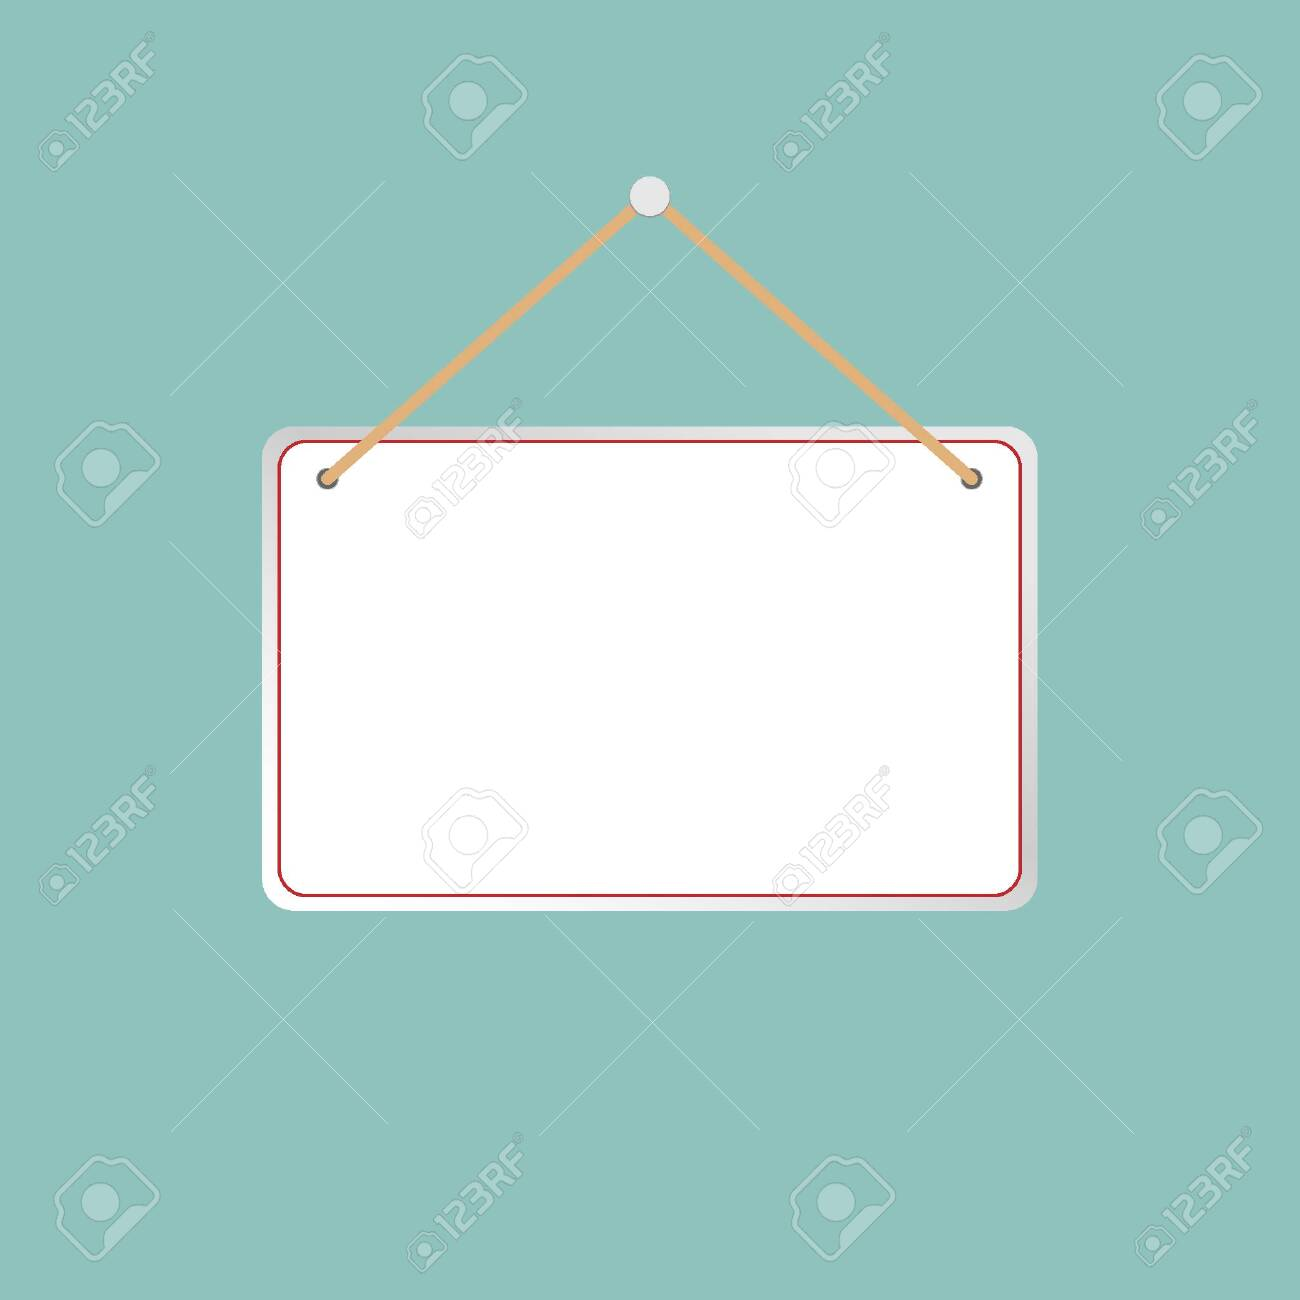 Illustration of a hanging sign against a light gray background. - 150230546